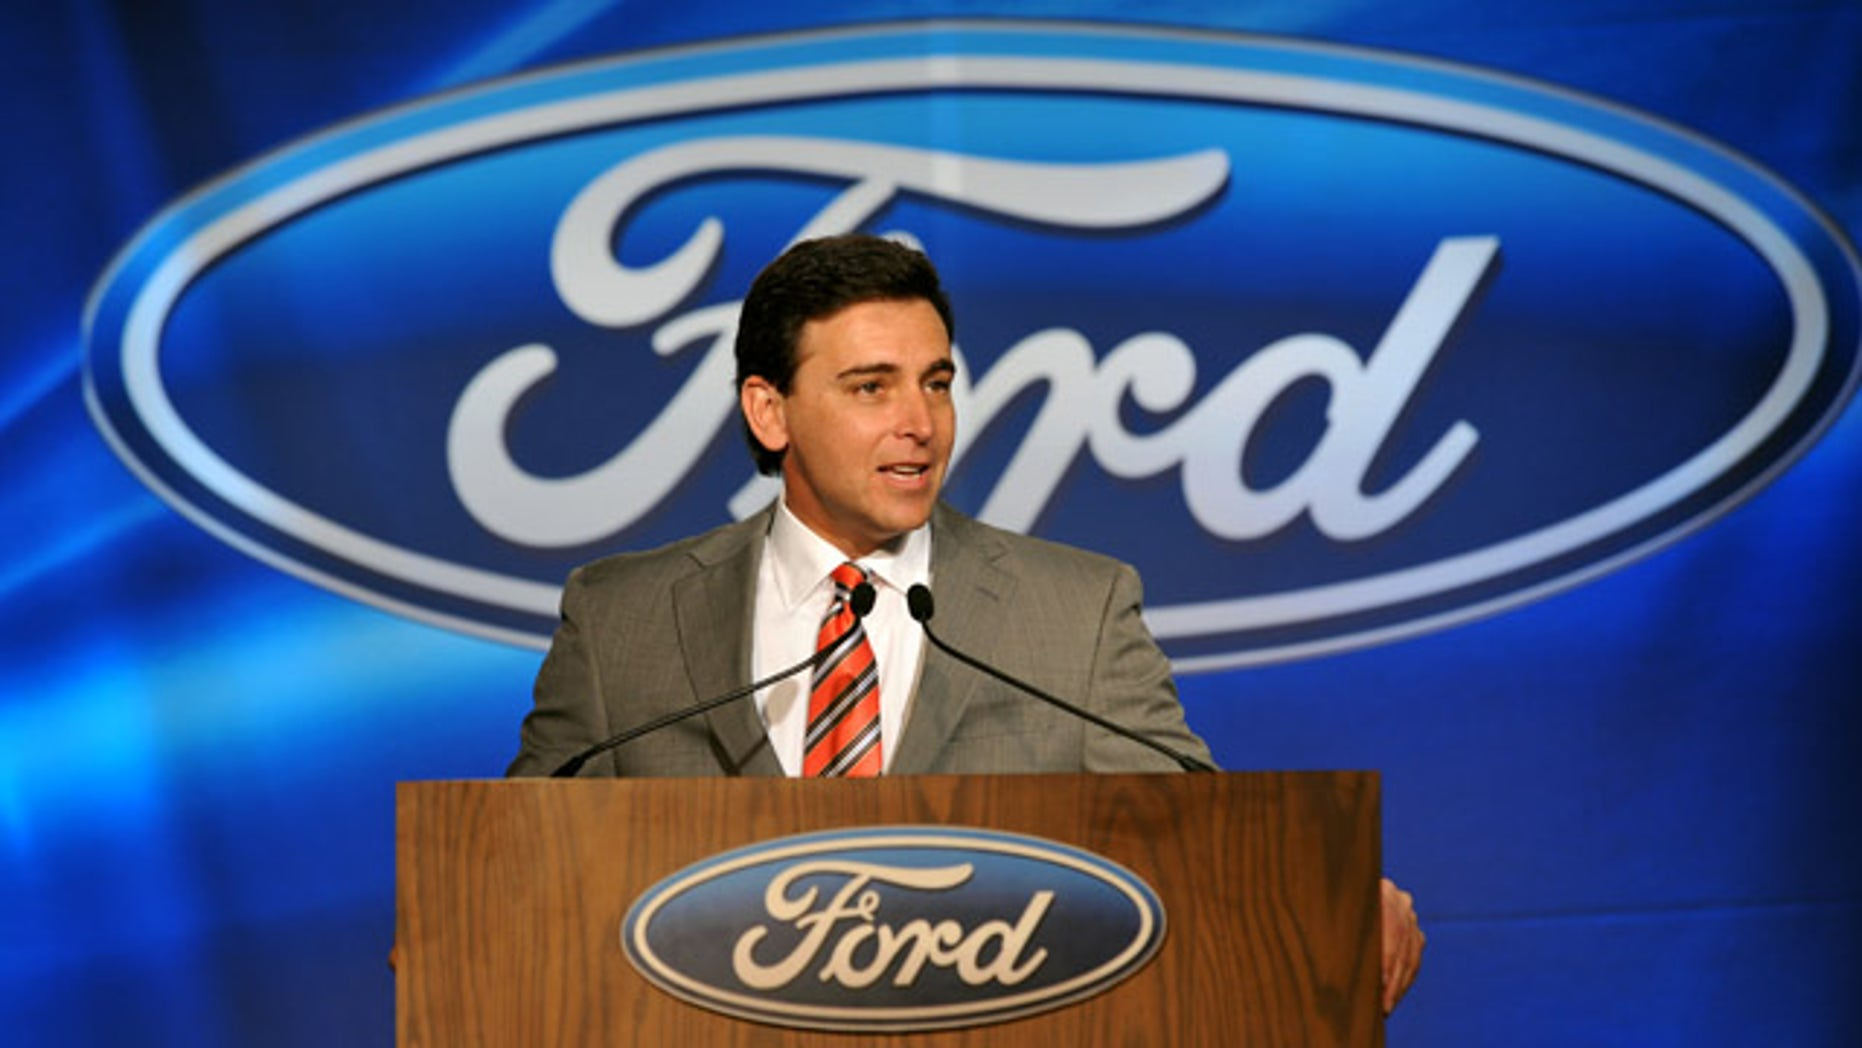 Mark Fields, President of the Americas, announces the details of the upcoming transformation of the Louisville Assembly Plant Thursday, Dec. 9, 2010, to produce the next generation Ford Escape. The event, at the plant in Louisville, Ky., was attended by government and UAW officials, and hundreds of plant employees. (AP Photo/Ford Motor Co., Sam VarnHagen)